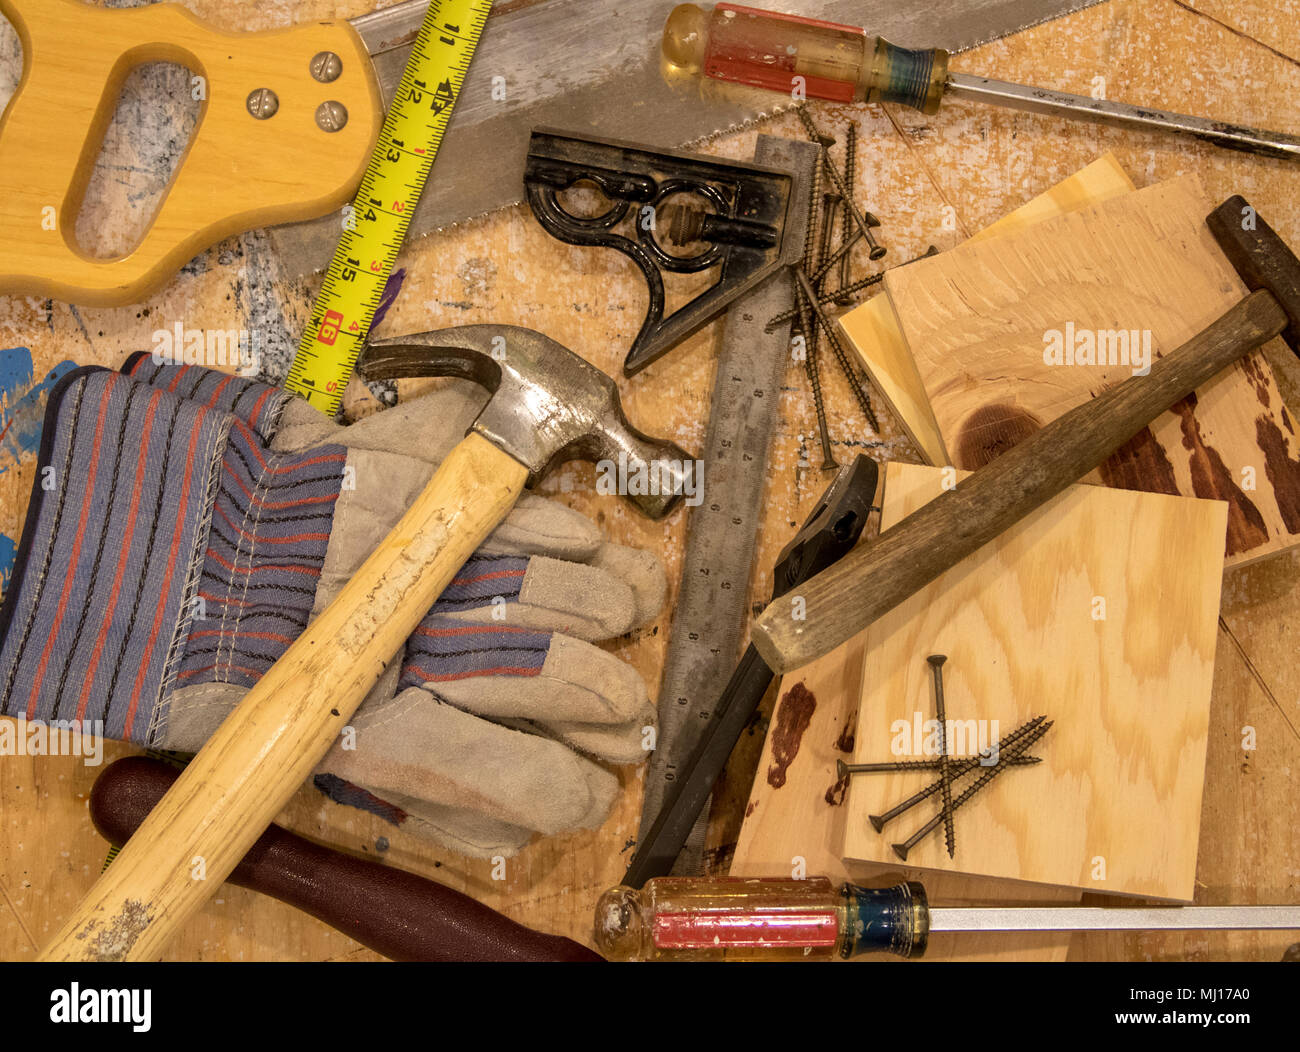 A collection of tools sitting on a workbench ready to be used - Stock Image